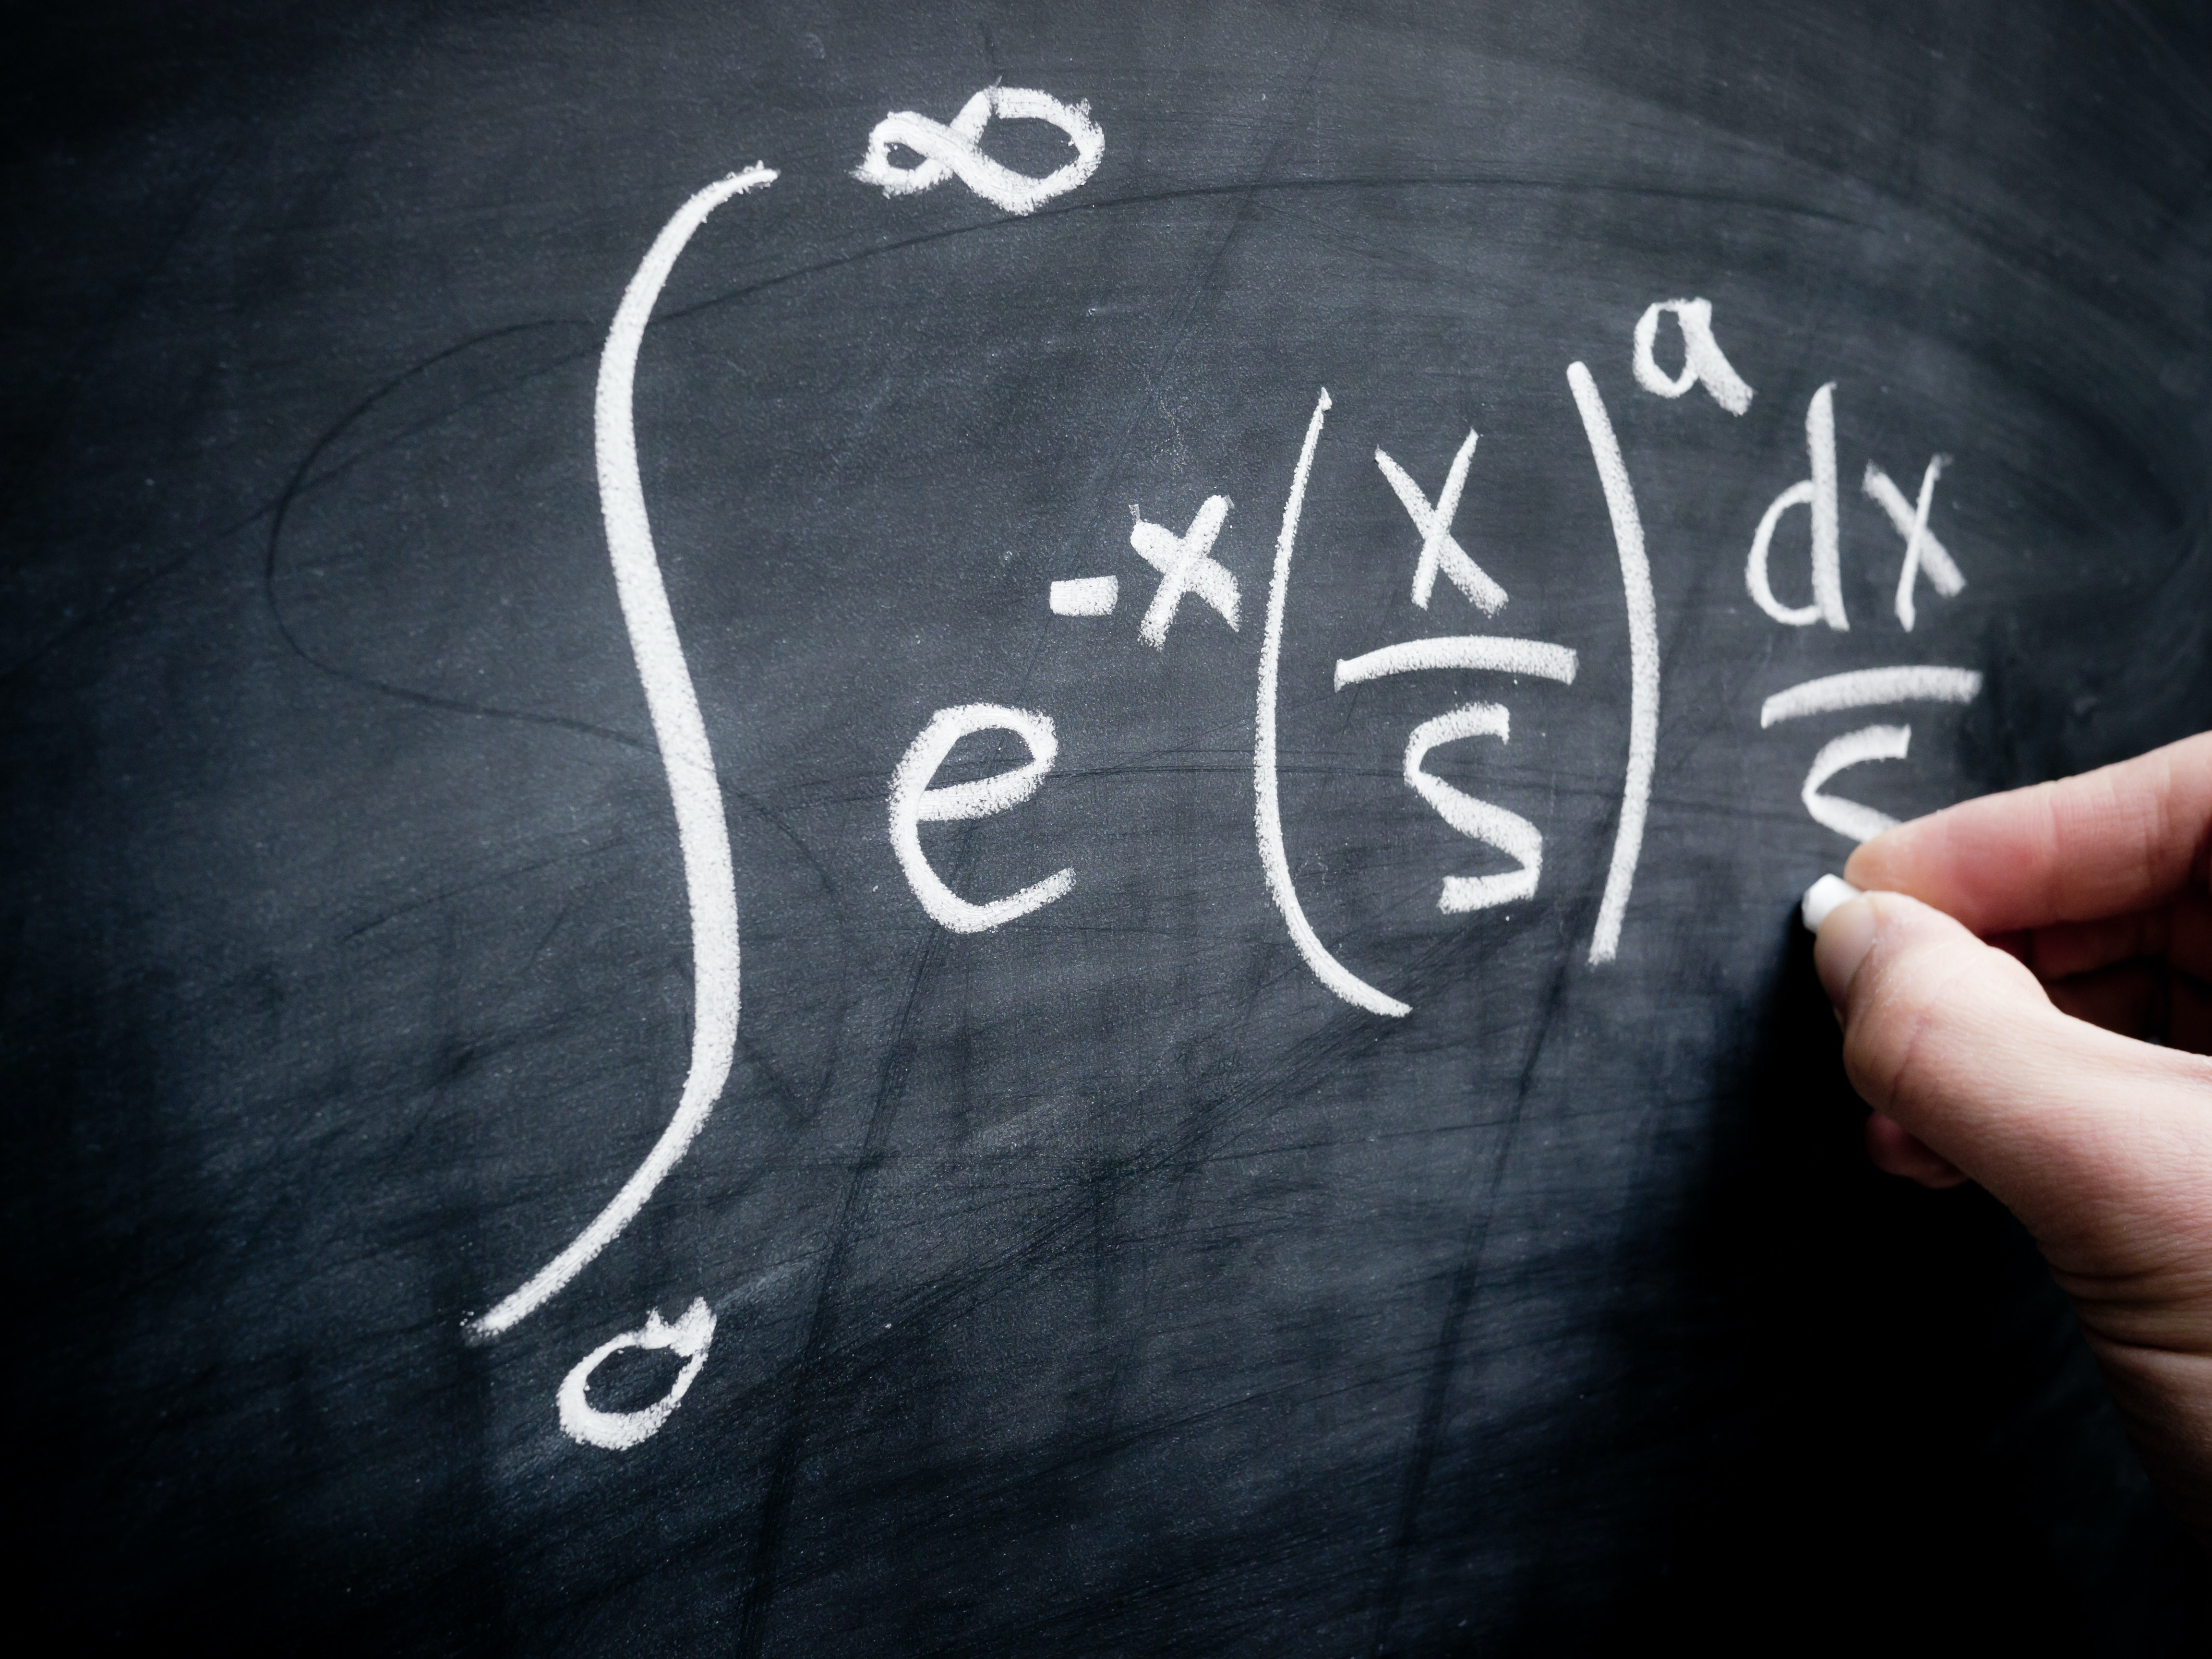 Who learns in maths classes depends on how maths is taught